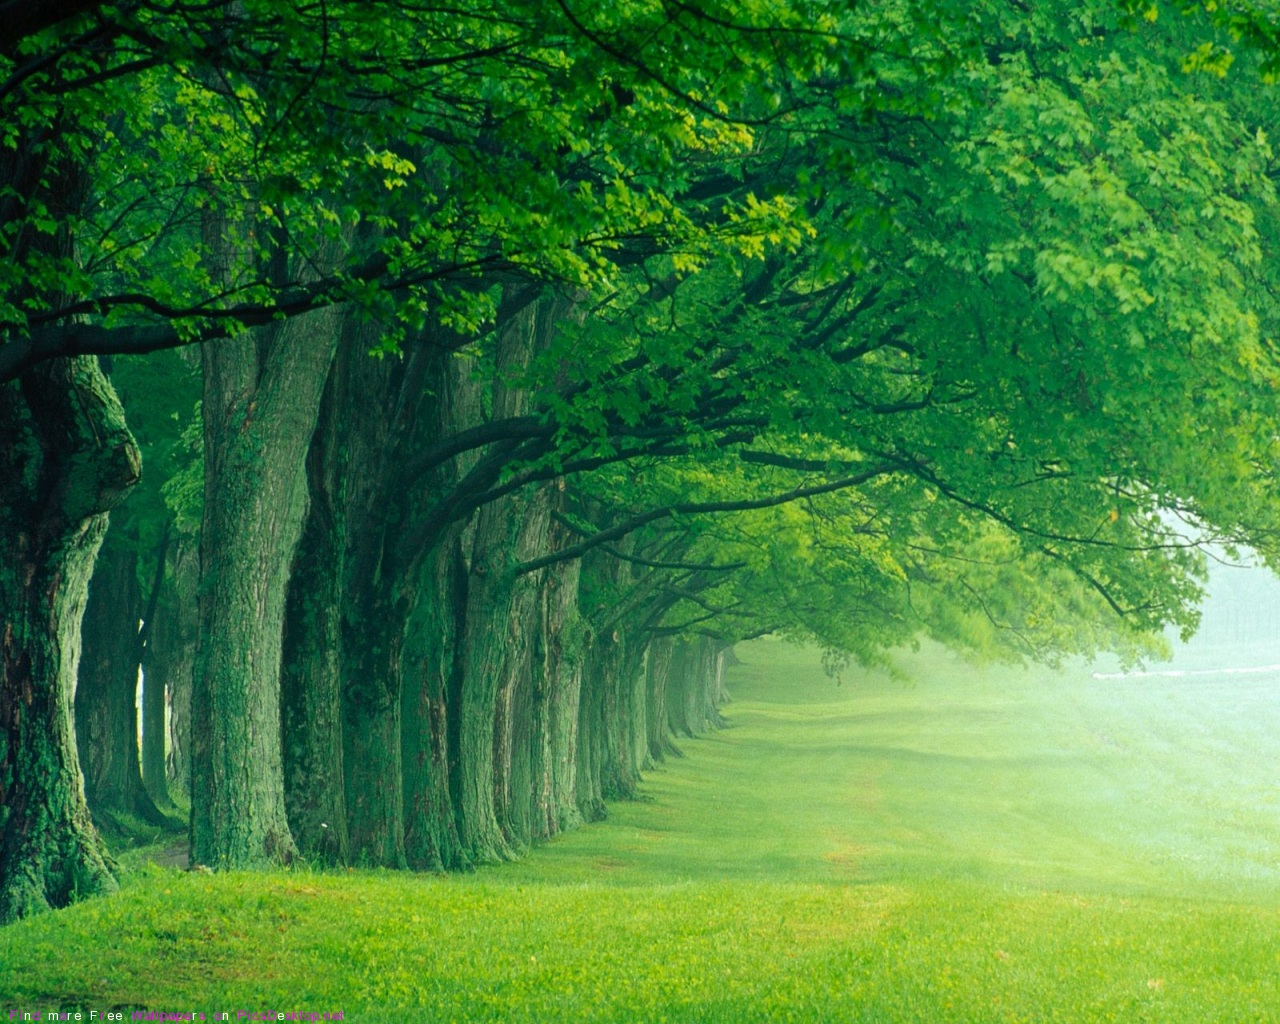 World Visits Green Forest best wallpapers images 1280x1024